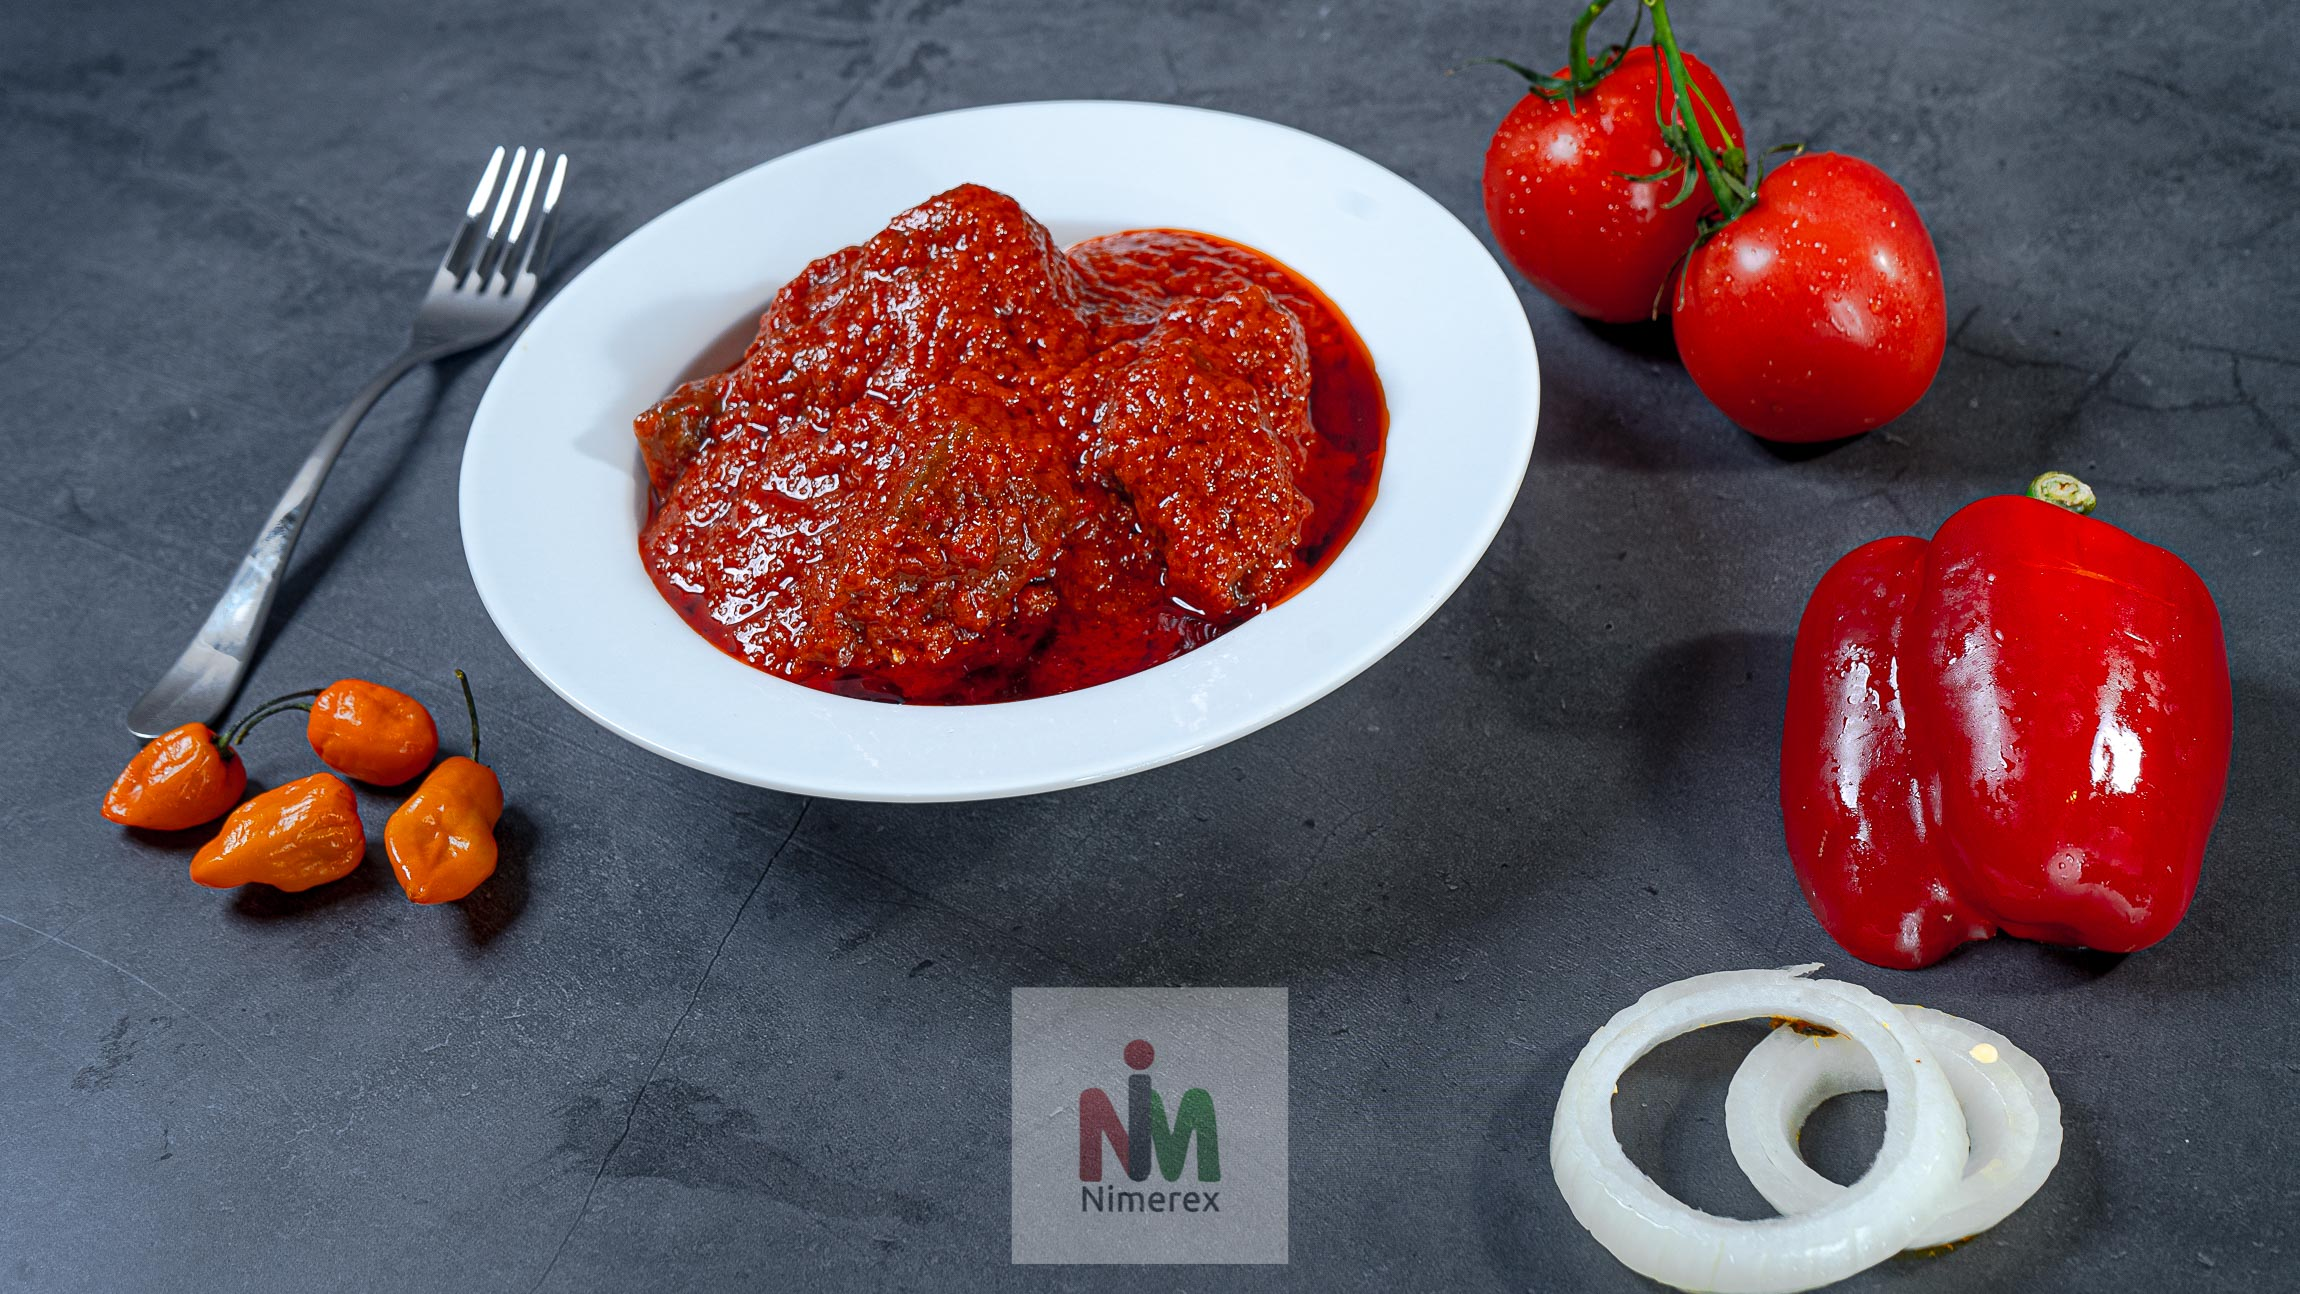 Nimerex Launches African Food delivery to all 50 states